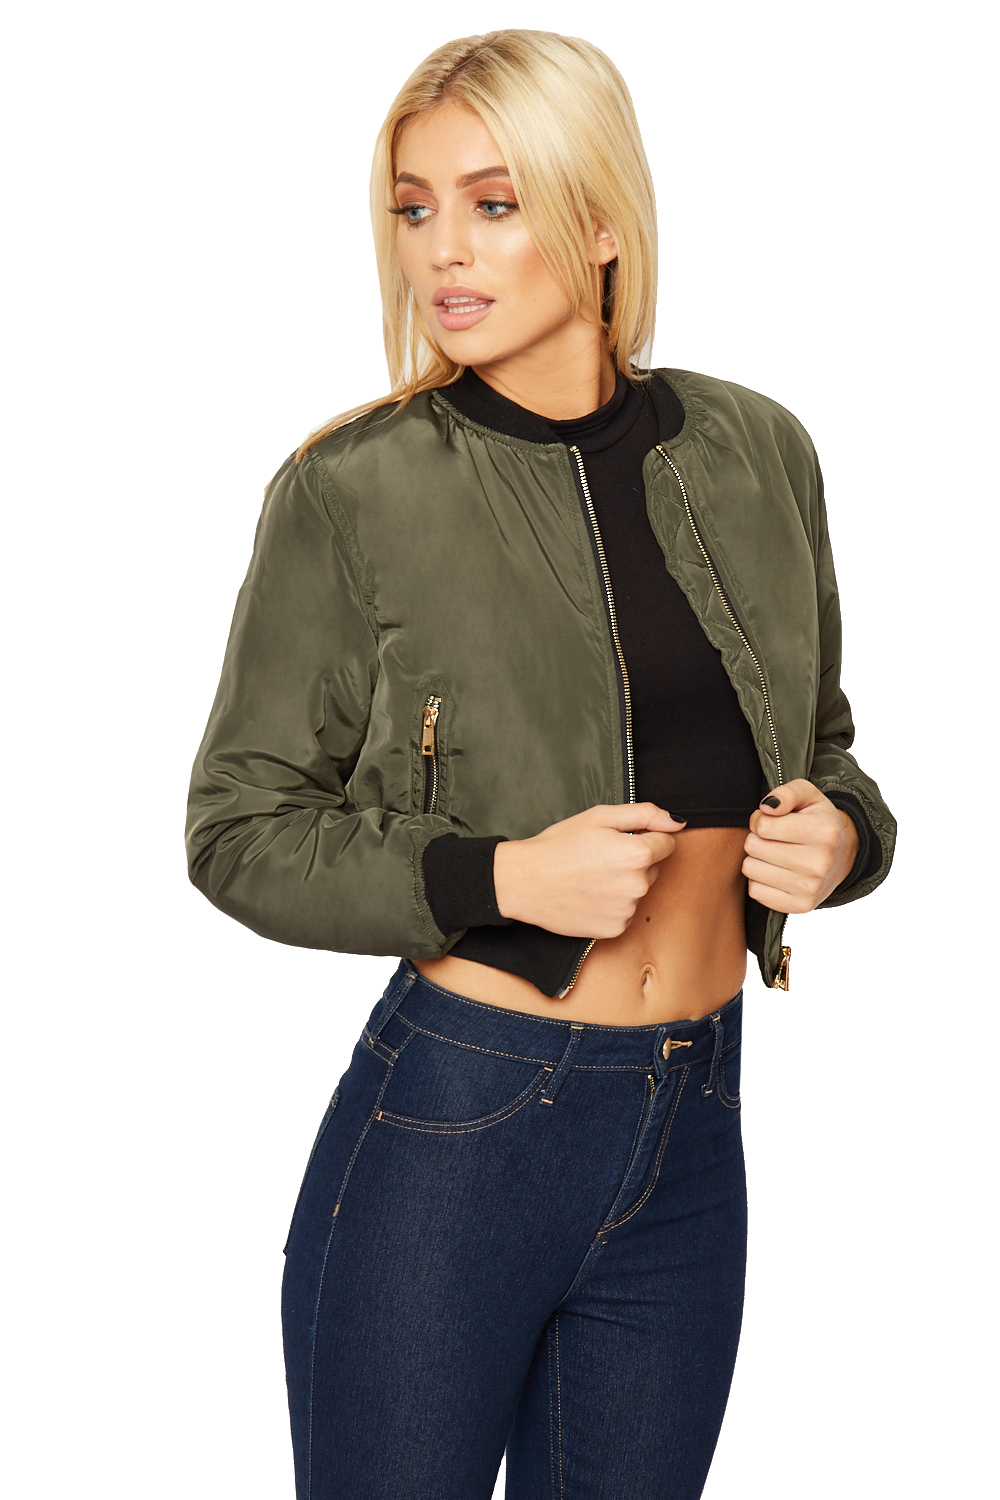 Womens Wet Look Cropped Jackets Coat Ladies Padded Bomber Bubble Puffer Short UK. from $ 25 5 out of 5 stars 4. Gfones. Women's Casual Open Front Work Office Jacket Ruffles 3/4 Sleeves Blazer. from $ 15 99 Prime. out of 5 stars SLINK Jeans. Women's Plus Size Cropped Denim Jacket $ 68 00 Prime.